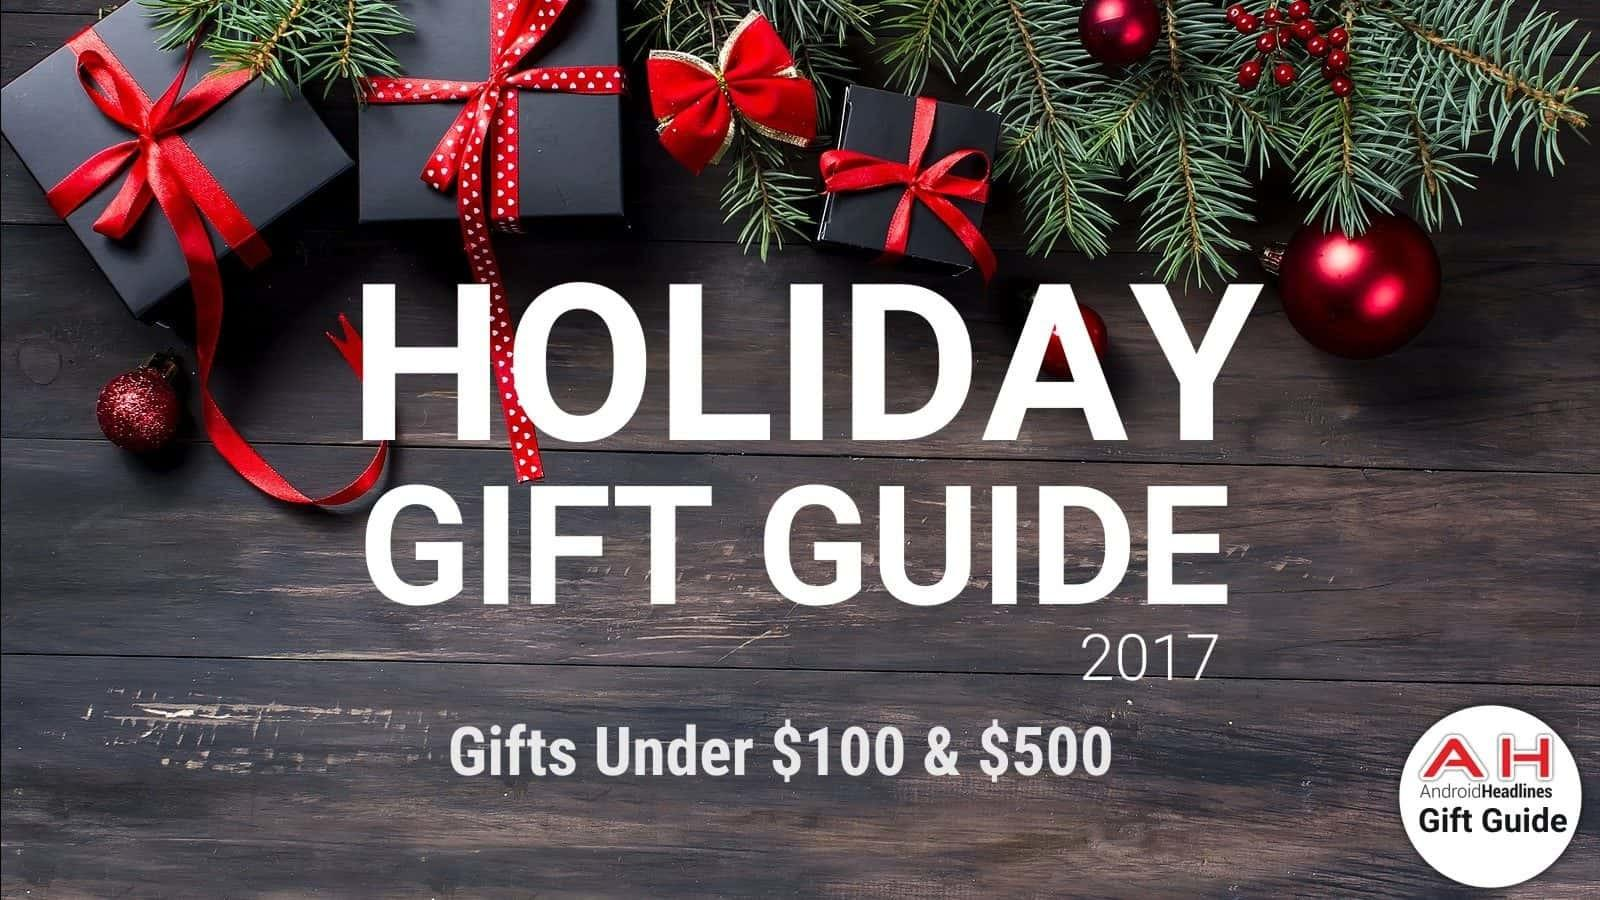 Holiday Gift Guide 2017 2018 Gifts Under 100